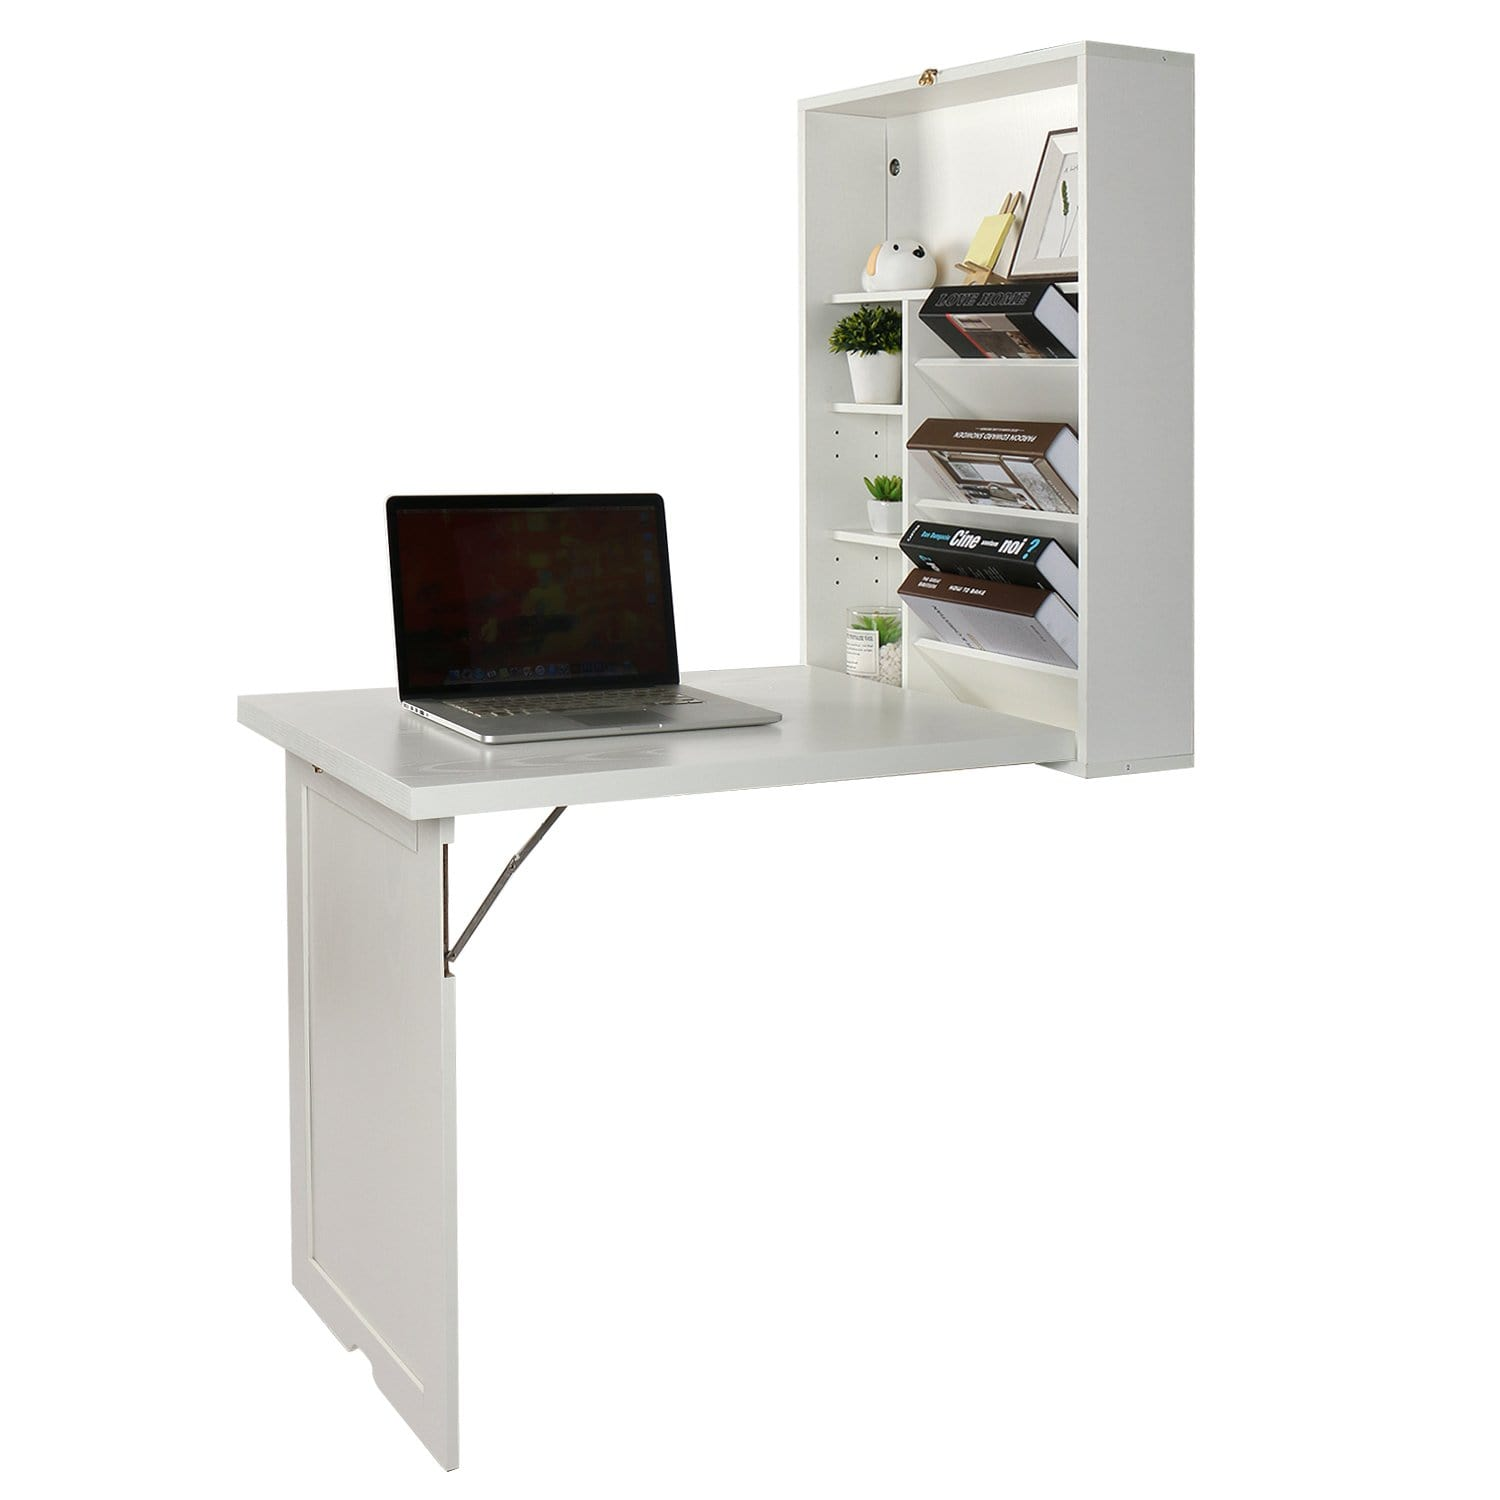 PULUOMIS Wall Mounted Table